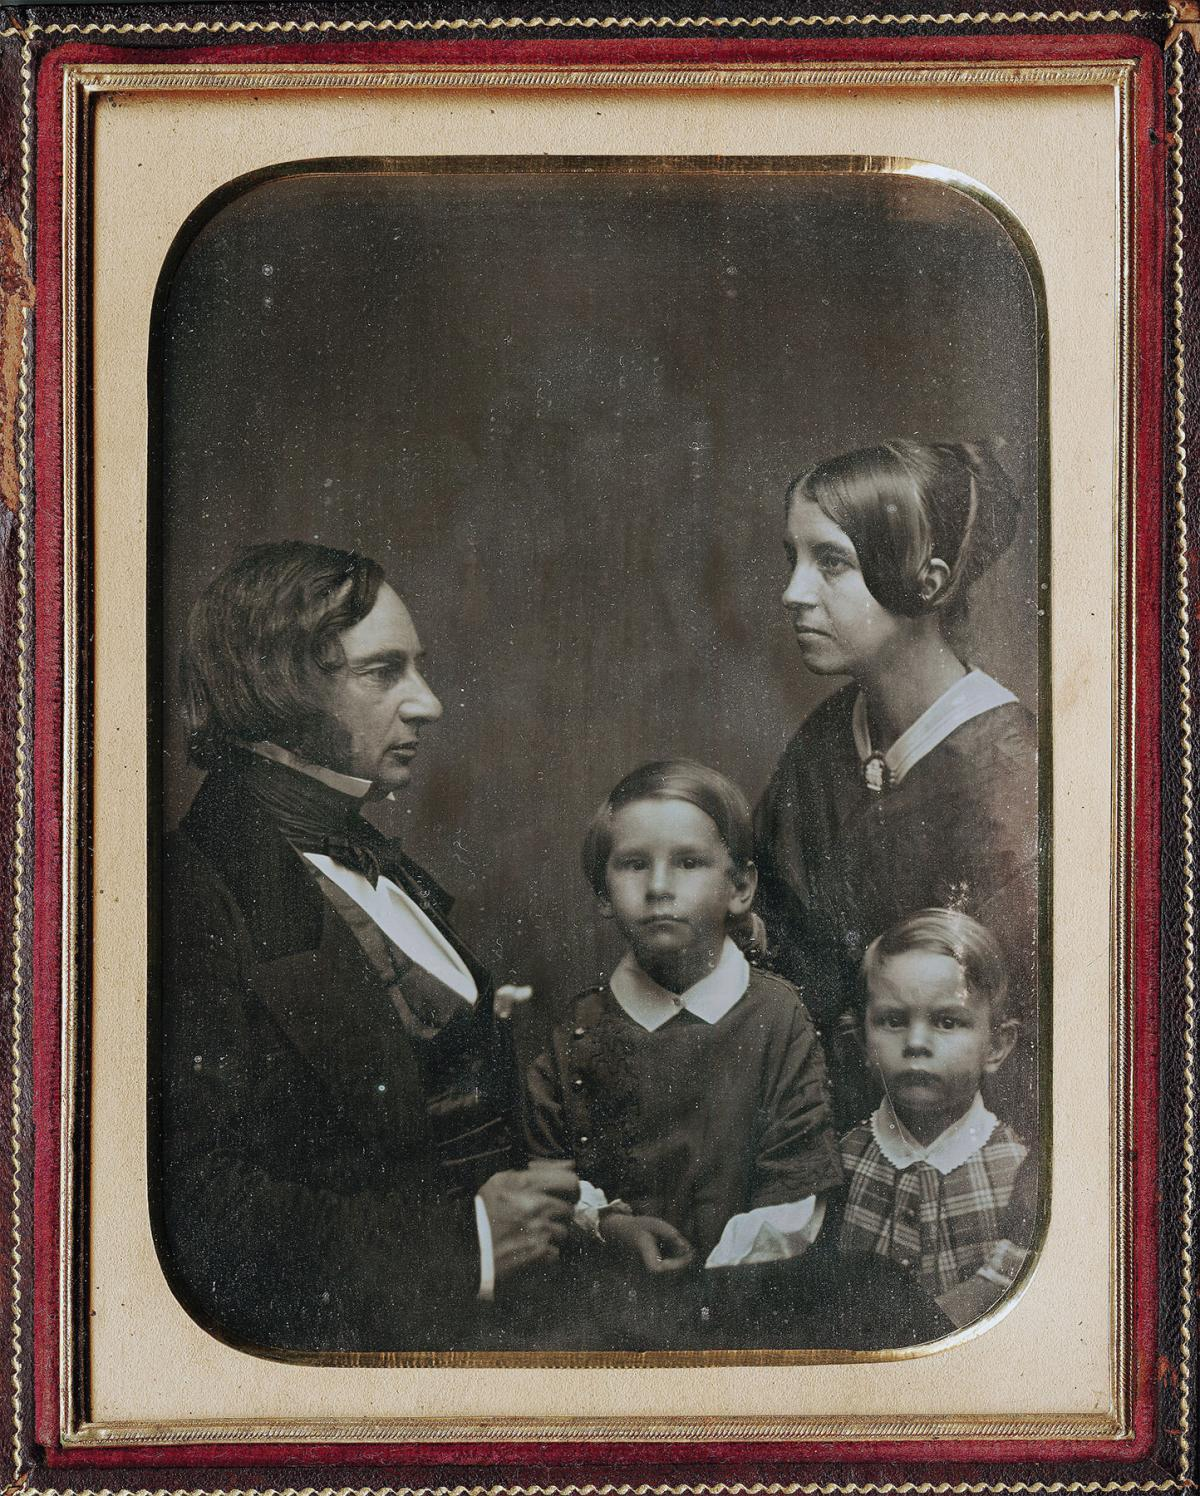 A portrait of the Longfellow family with sons Charles and Ernest.